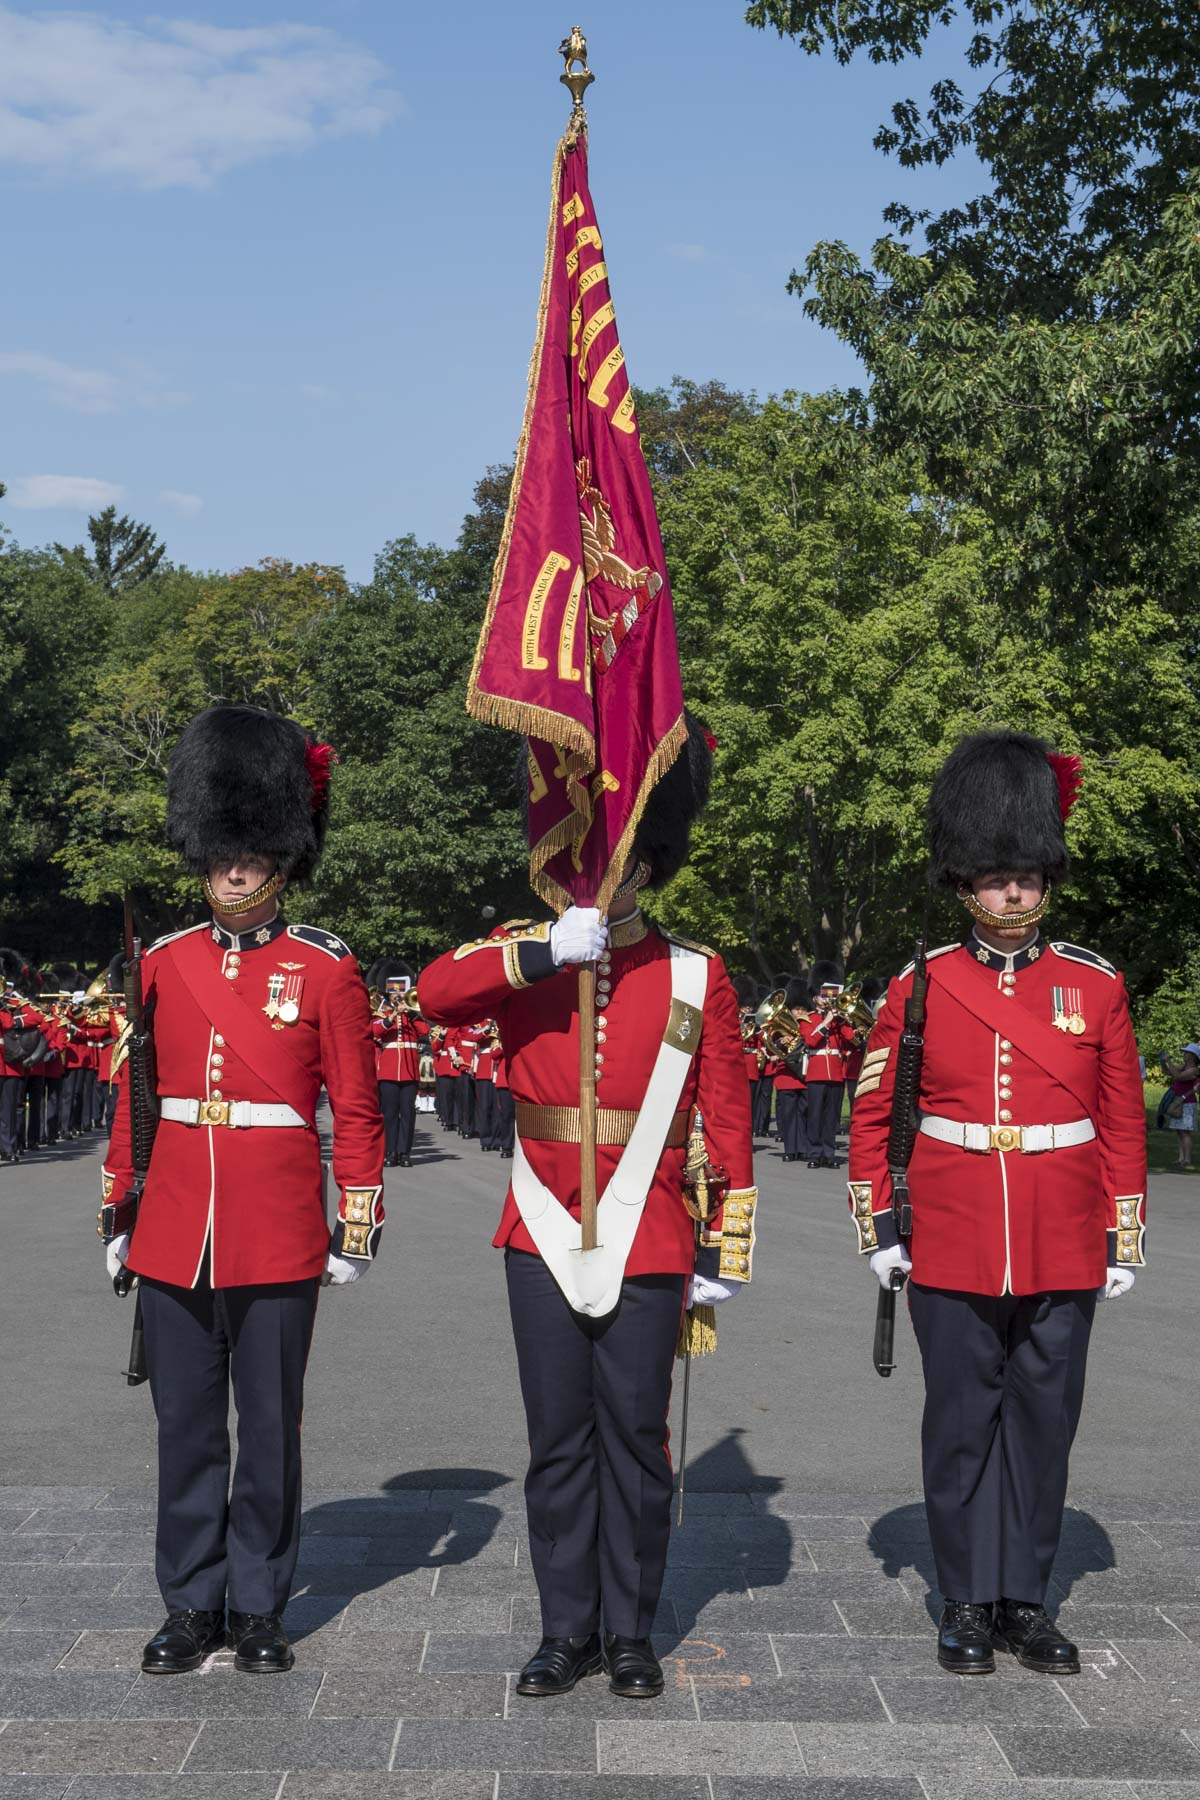 The Ceremonial Guard is comprised of The Governor General's Foot Guards (GGFG), The Canadian Grenadier Guards (CGG) and the Band of the Ceremonial Guard.